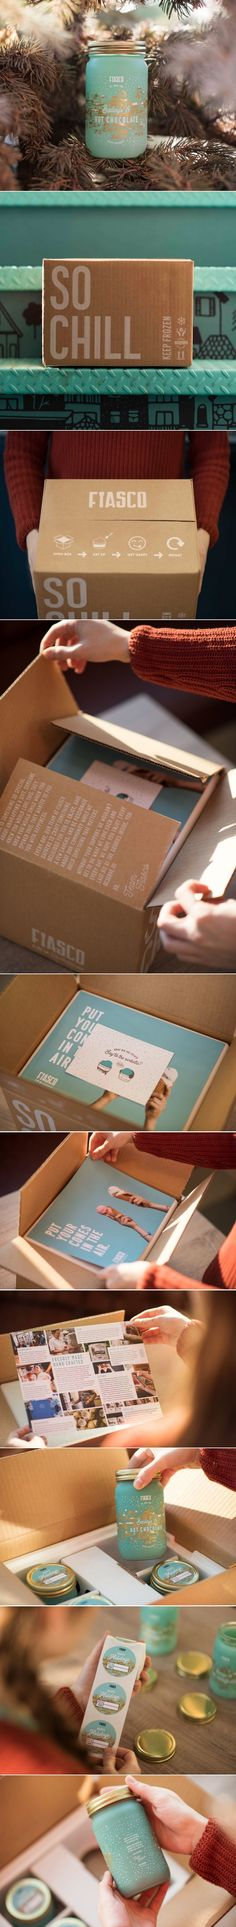 Check Out The Adorable Packaging and Unboxing For Fiasco Gelato's Hot Chocolate — The Dieline   Packaging & Branding Design & Innovation News